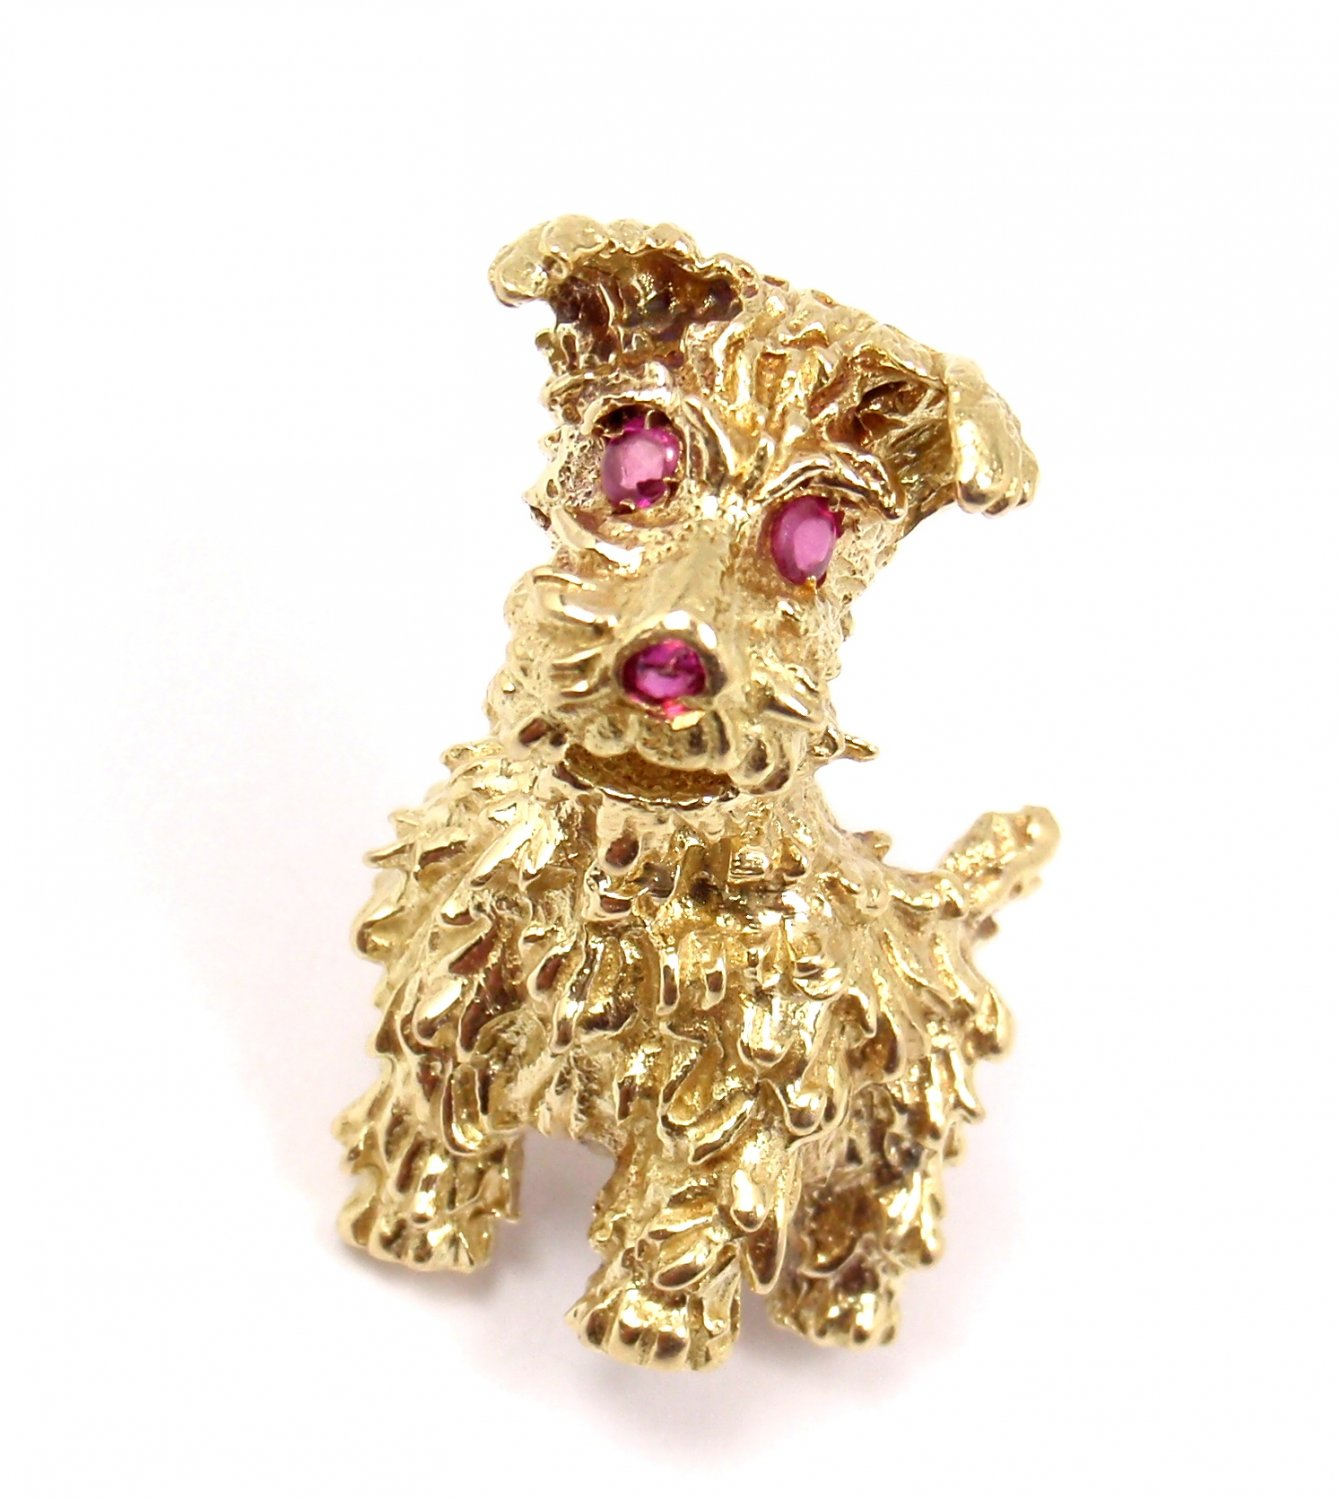 RARE Vintage Tiffany & Co 18K Gold Dog Ruby Eyes Textured 3D Pin Brooch ITALY